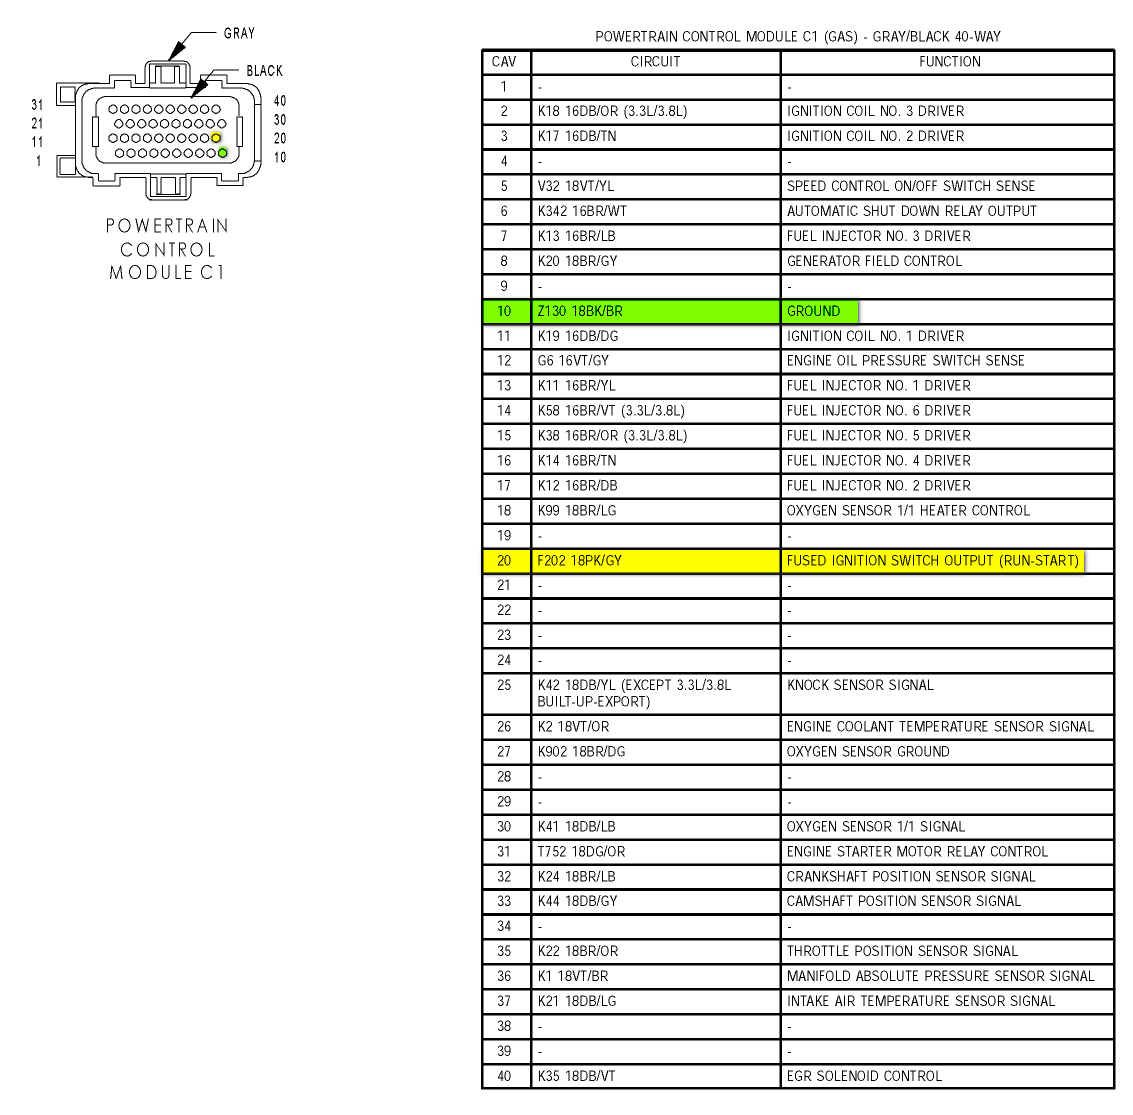 2001 dodge ram 2500 fuel pump wiring diagram with 22xhb 2003 Dodge Caravan Lost Negeative Fuel on 2jjtw Dodge Intrepid Blown 2 7l I Rebuilt Engine Fired moreover Jeep Grand Cherokee Asd Relay Wiring Diagram together with 2003 Silverado dlc diagram besides 2x1is Dodge Cummins 70k Mi Fuel Problems1st Hint Problem Cool in addition 7qe6s 2002 International 4300 Dt 466 Several Electrical.